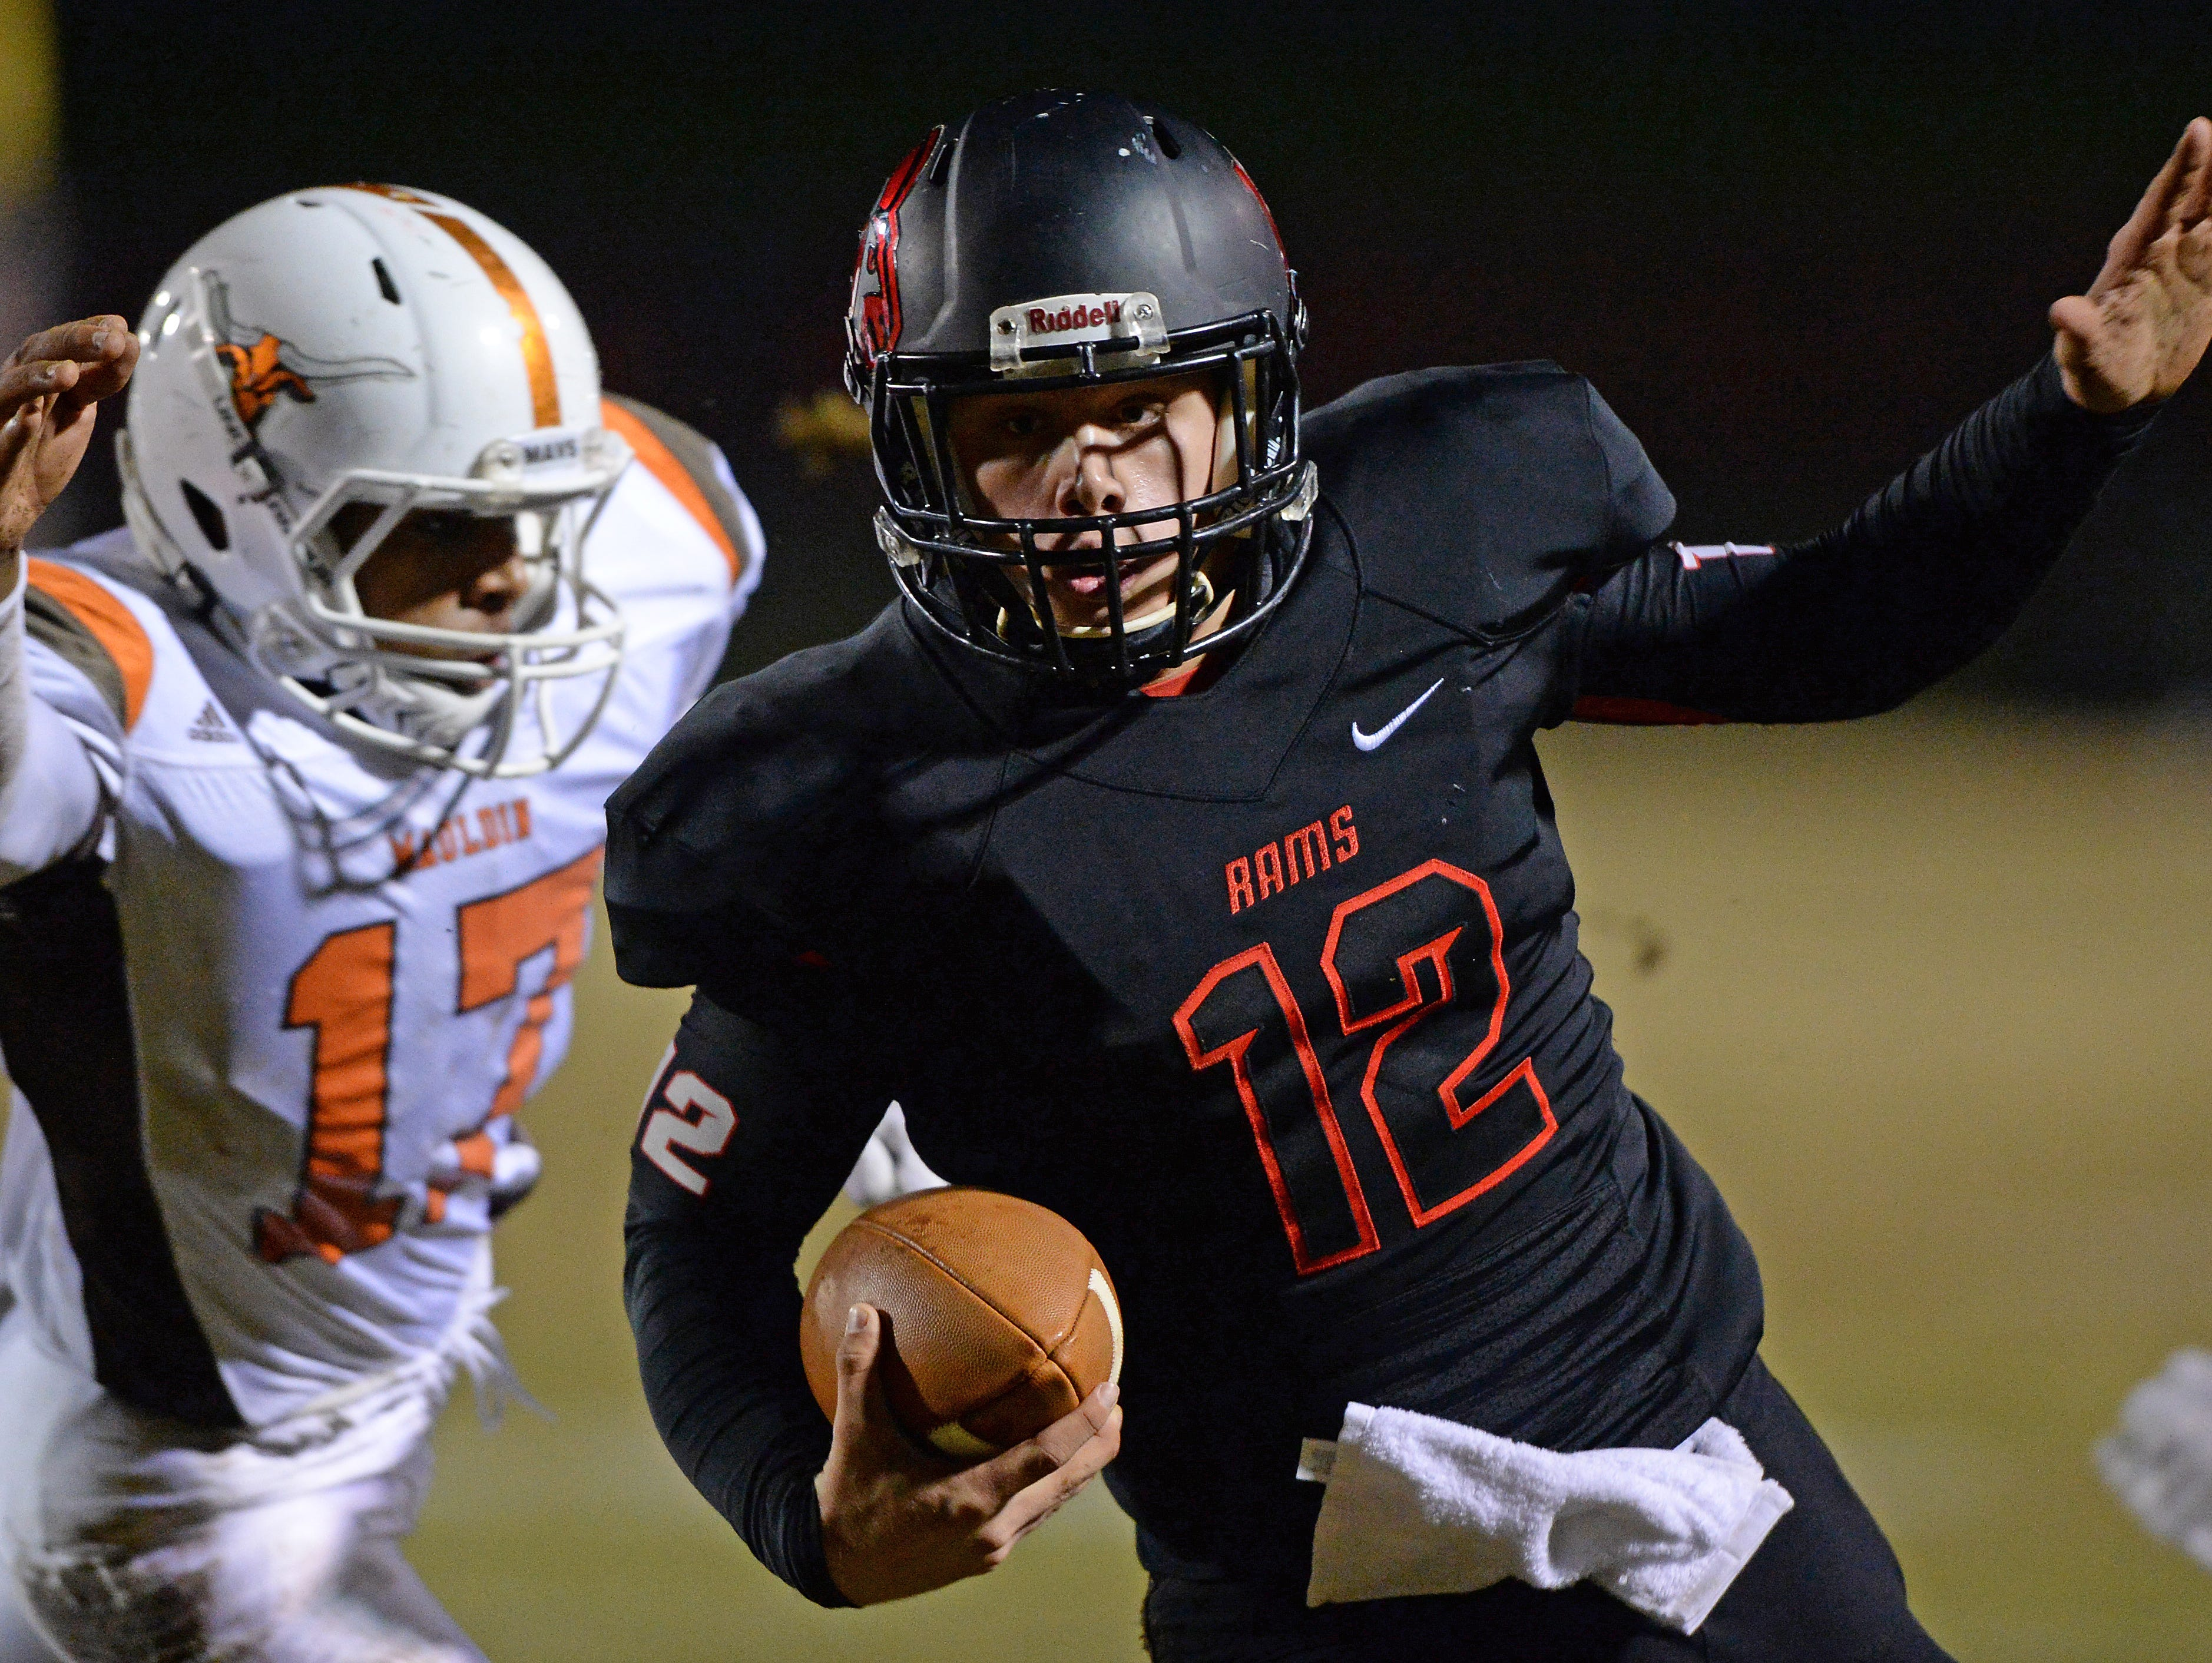 Hillcrest quarterback Collin Sneed (12) carries past Mauldin's Charles Gupton (17) during the first round of the Class AAAA Division-I playoffs Friday, November 20, 2015 at Hillcrest High.